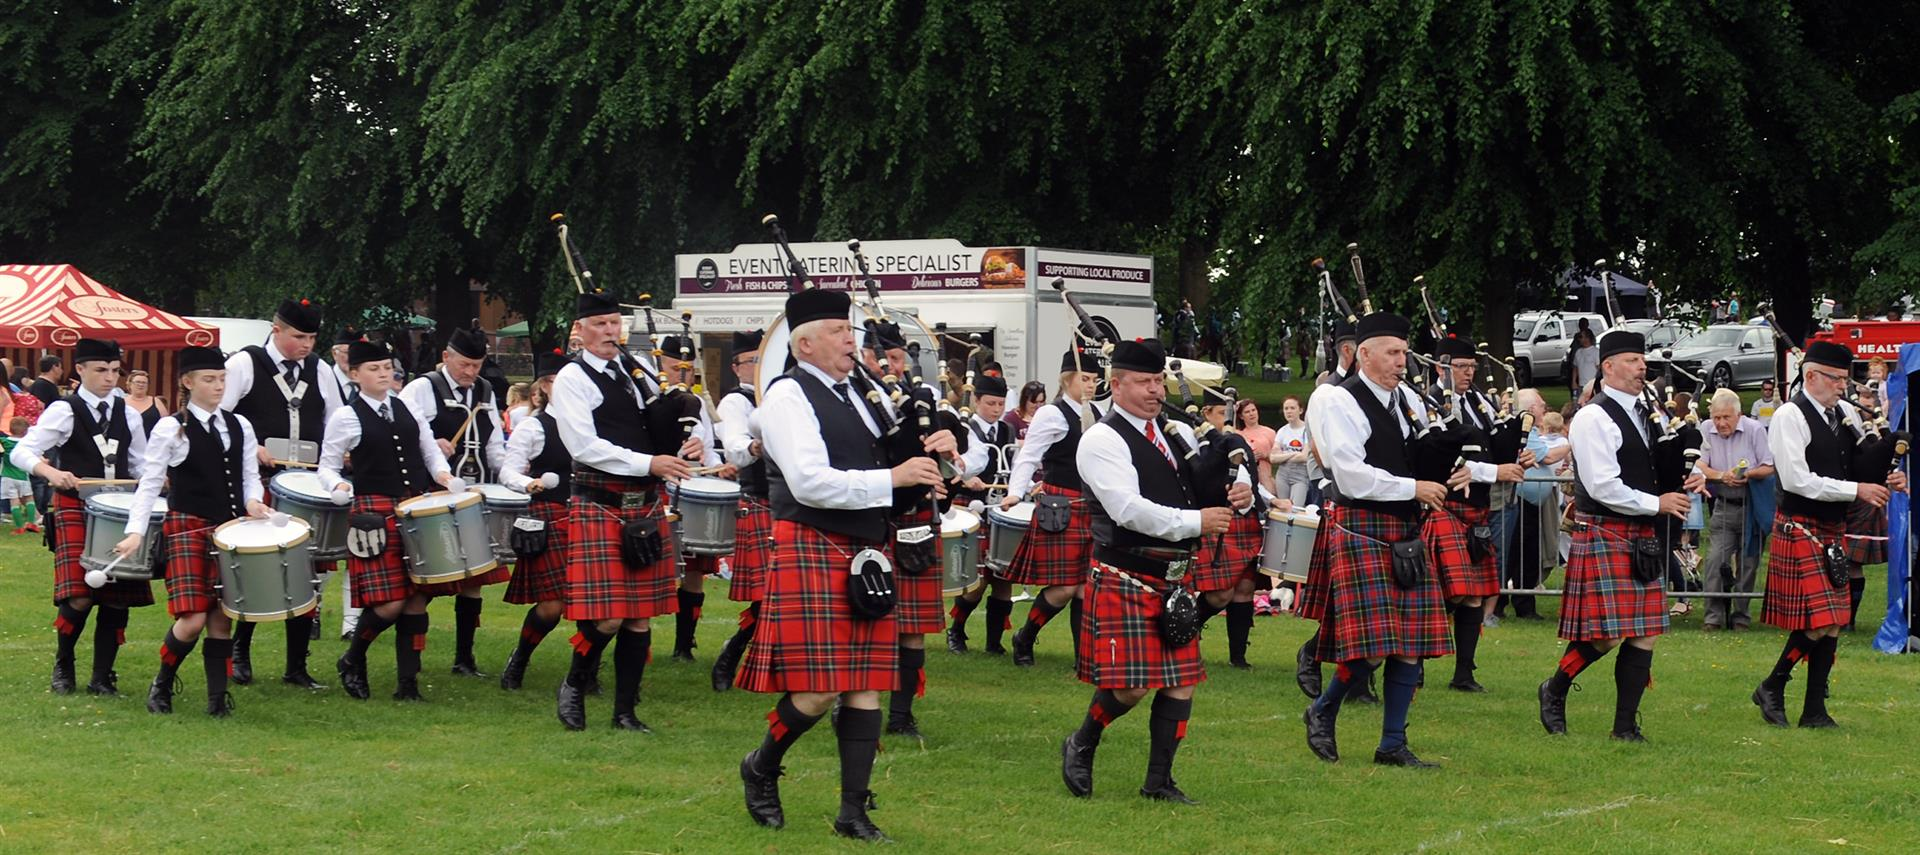 In Pictures Thousands Flock To Lurgan Park For The Pipe